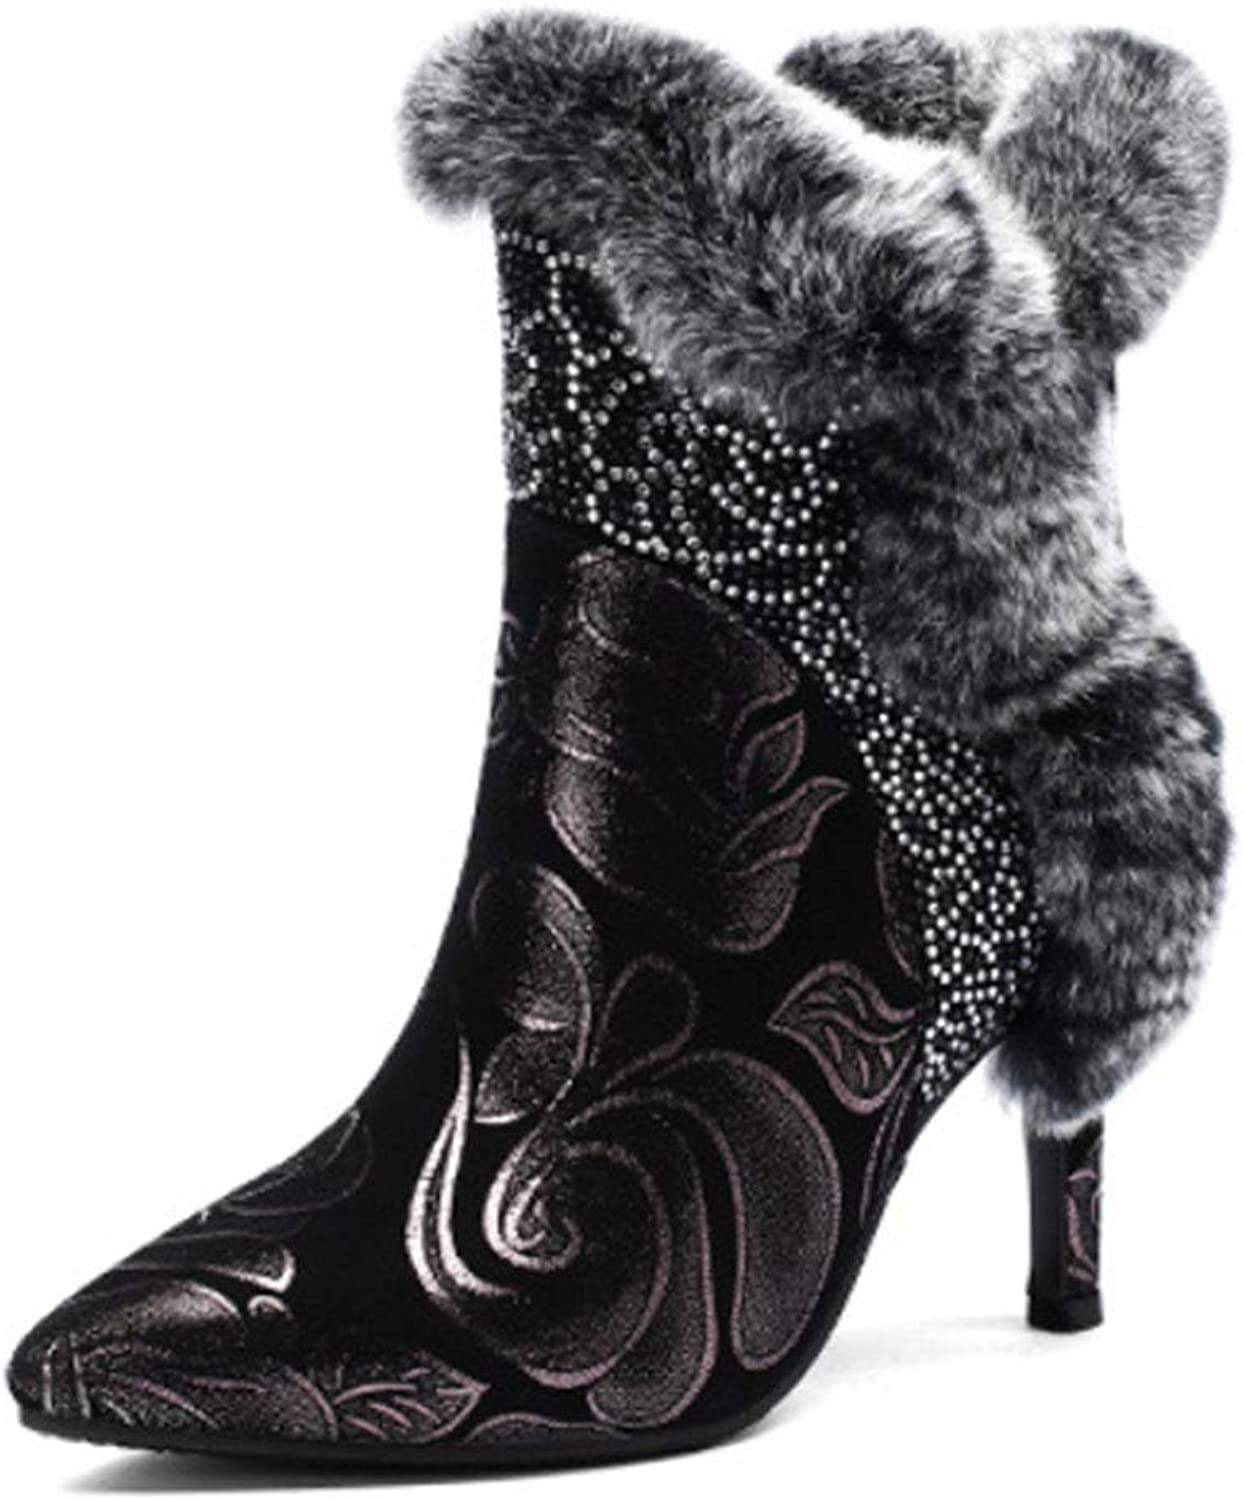 Women's Winter Boots high Heel Leather Pointed Low Boots Side Zipper Diamond Rabbit Fur Decoration Warm Fashion Boots